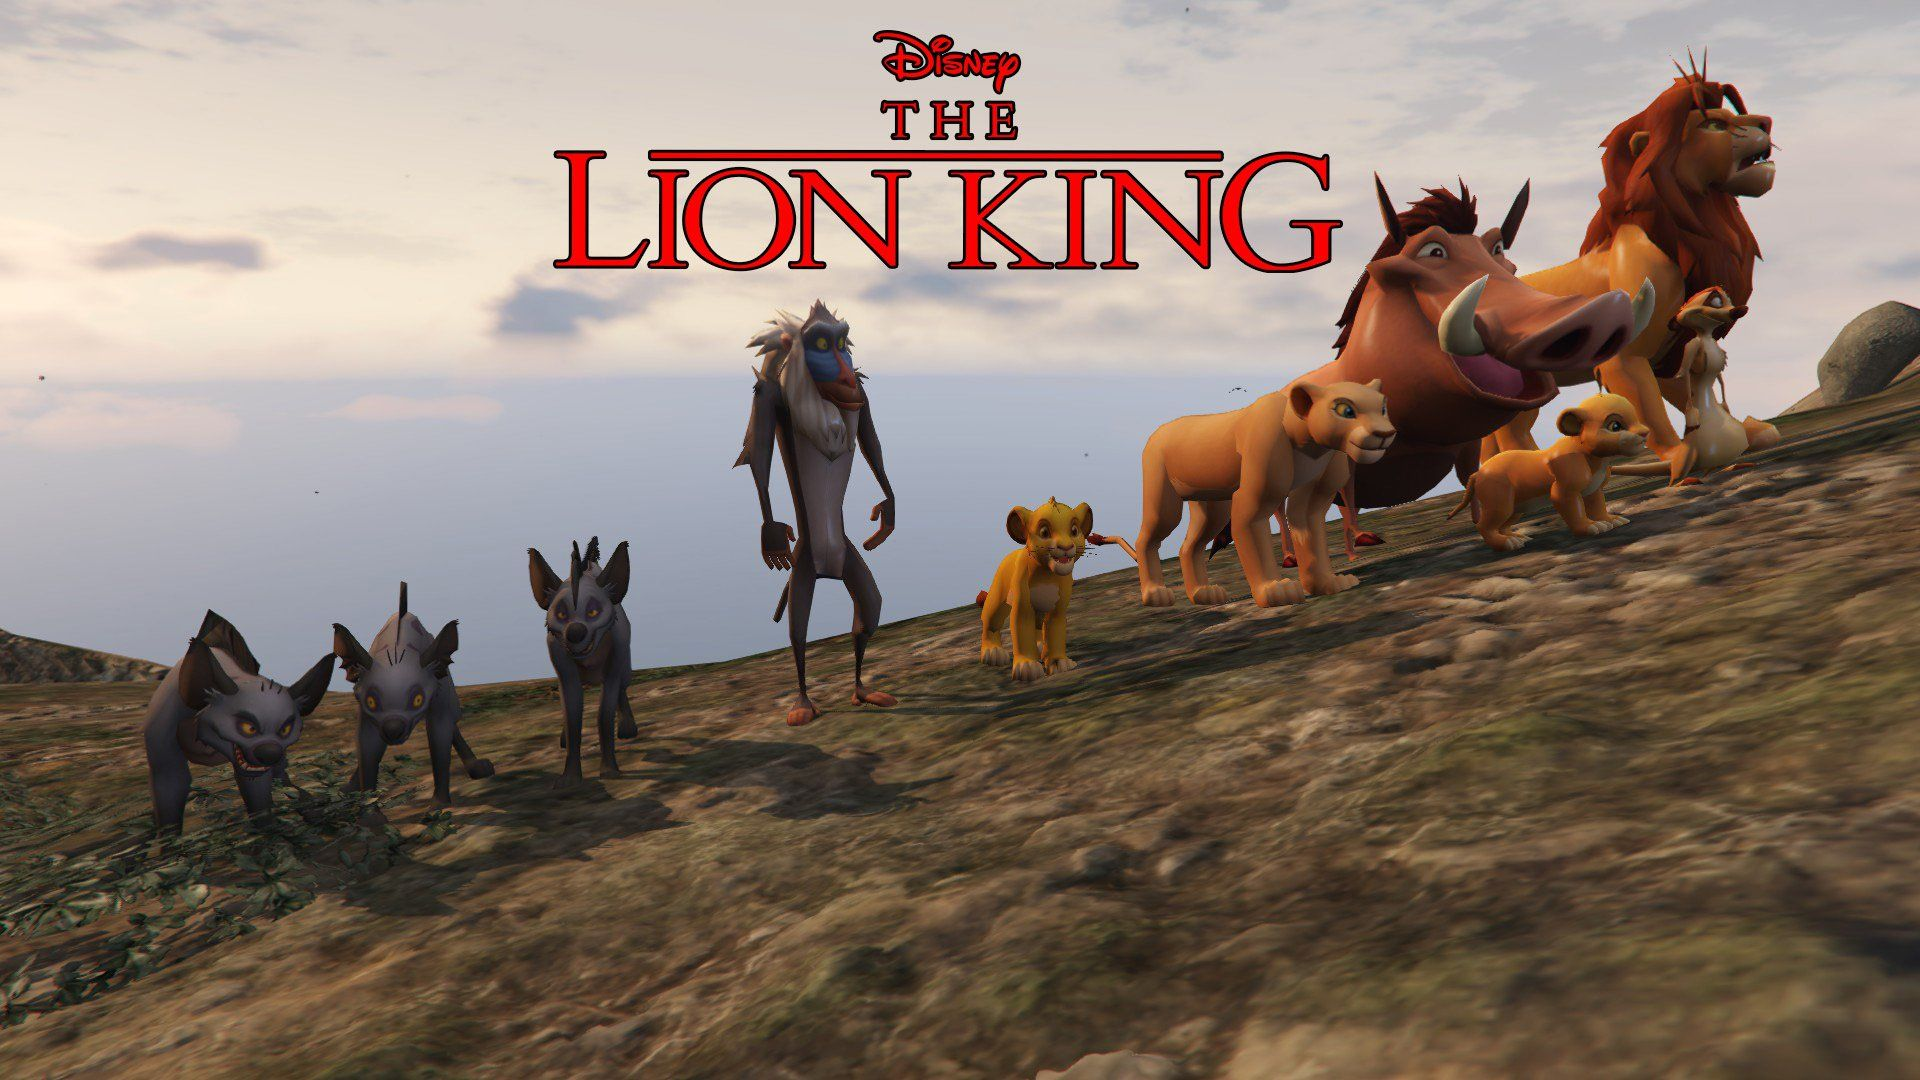 Pics photos grand theft auto iv the law breaking spree continues - Grand Theft Auto 5 Gets A Lion King Mod For A Crazy Character Crime Spree